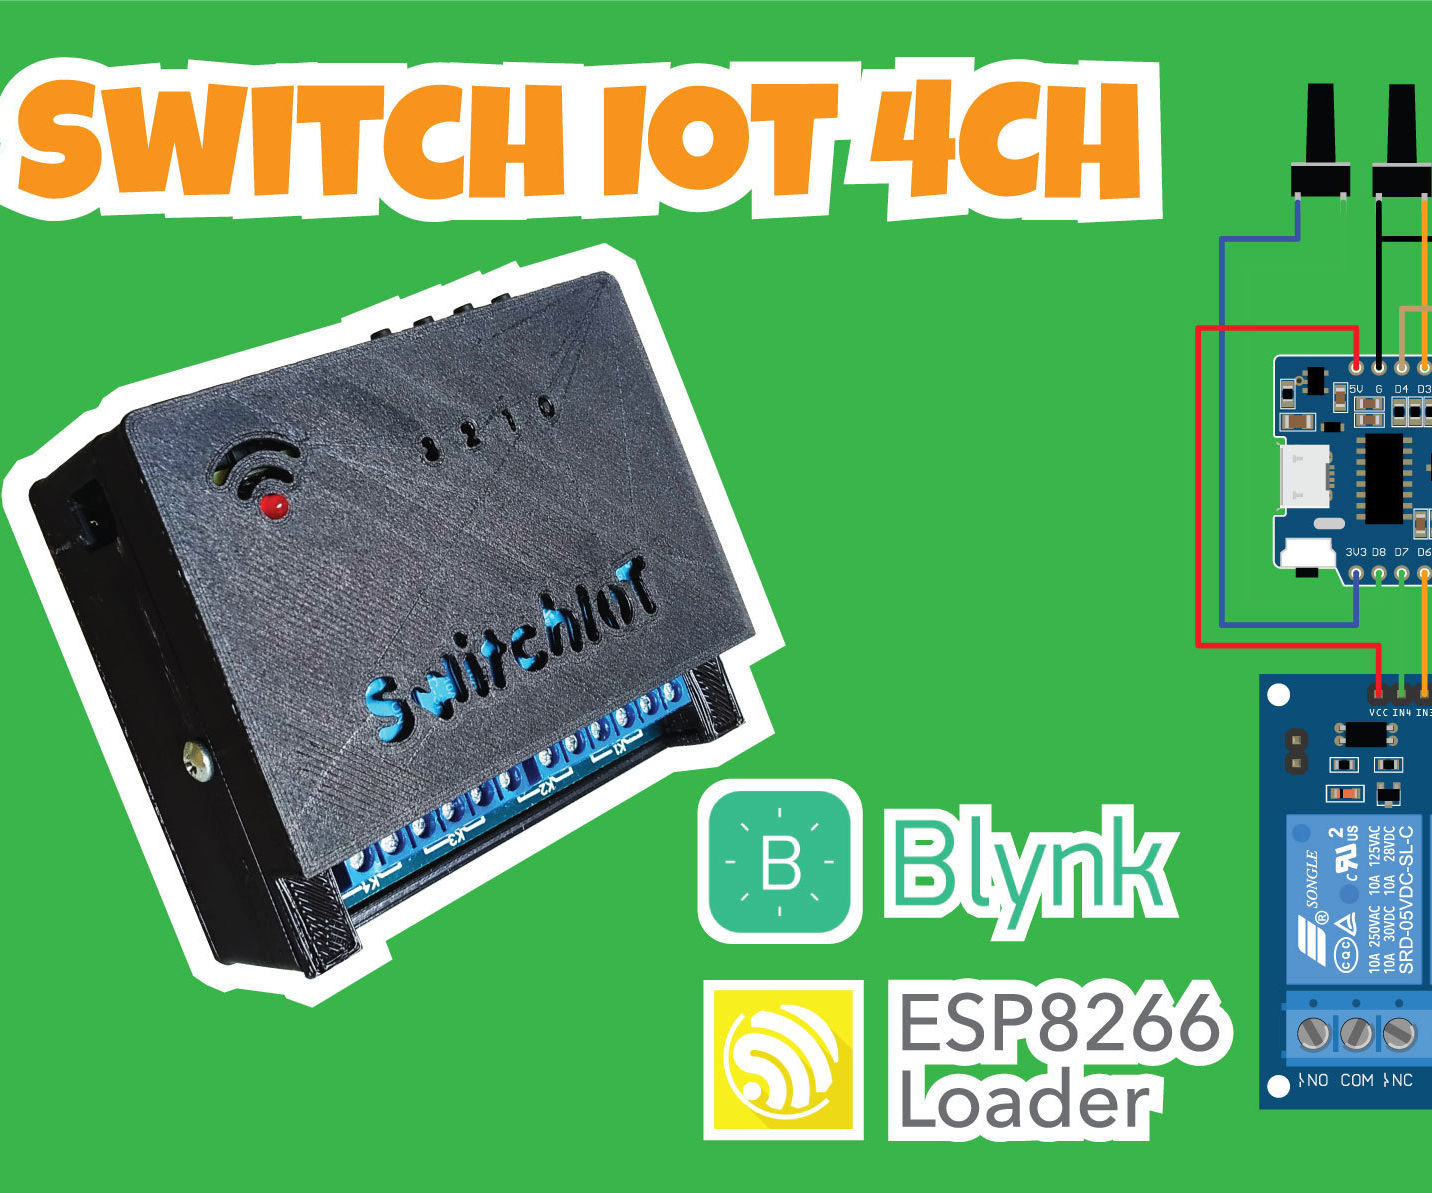 Make Blynk Switch IoT 4CH Only Use Smartphone (ESP8266 Loader)